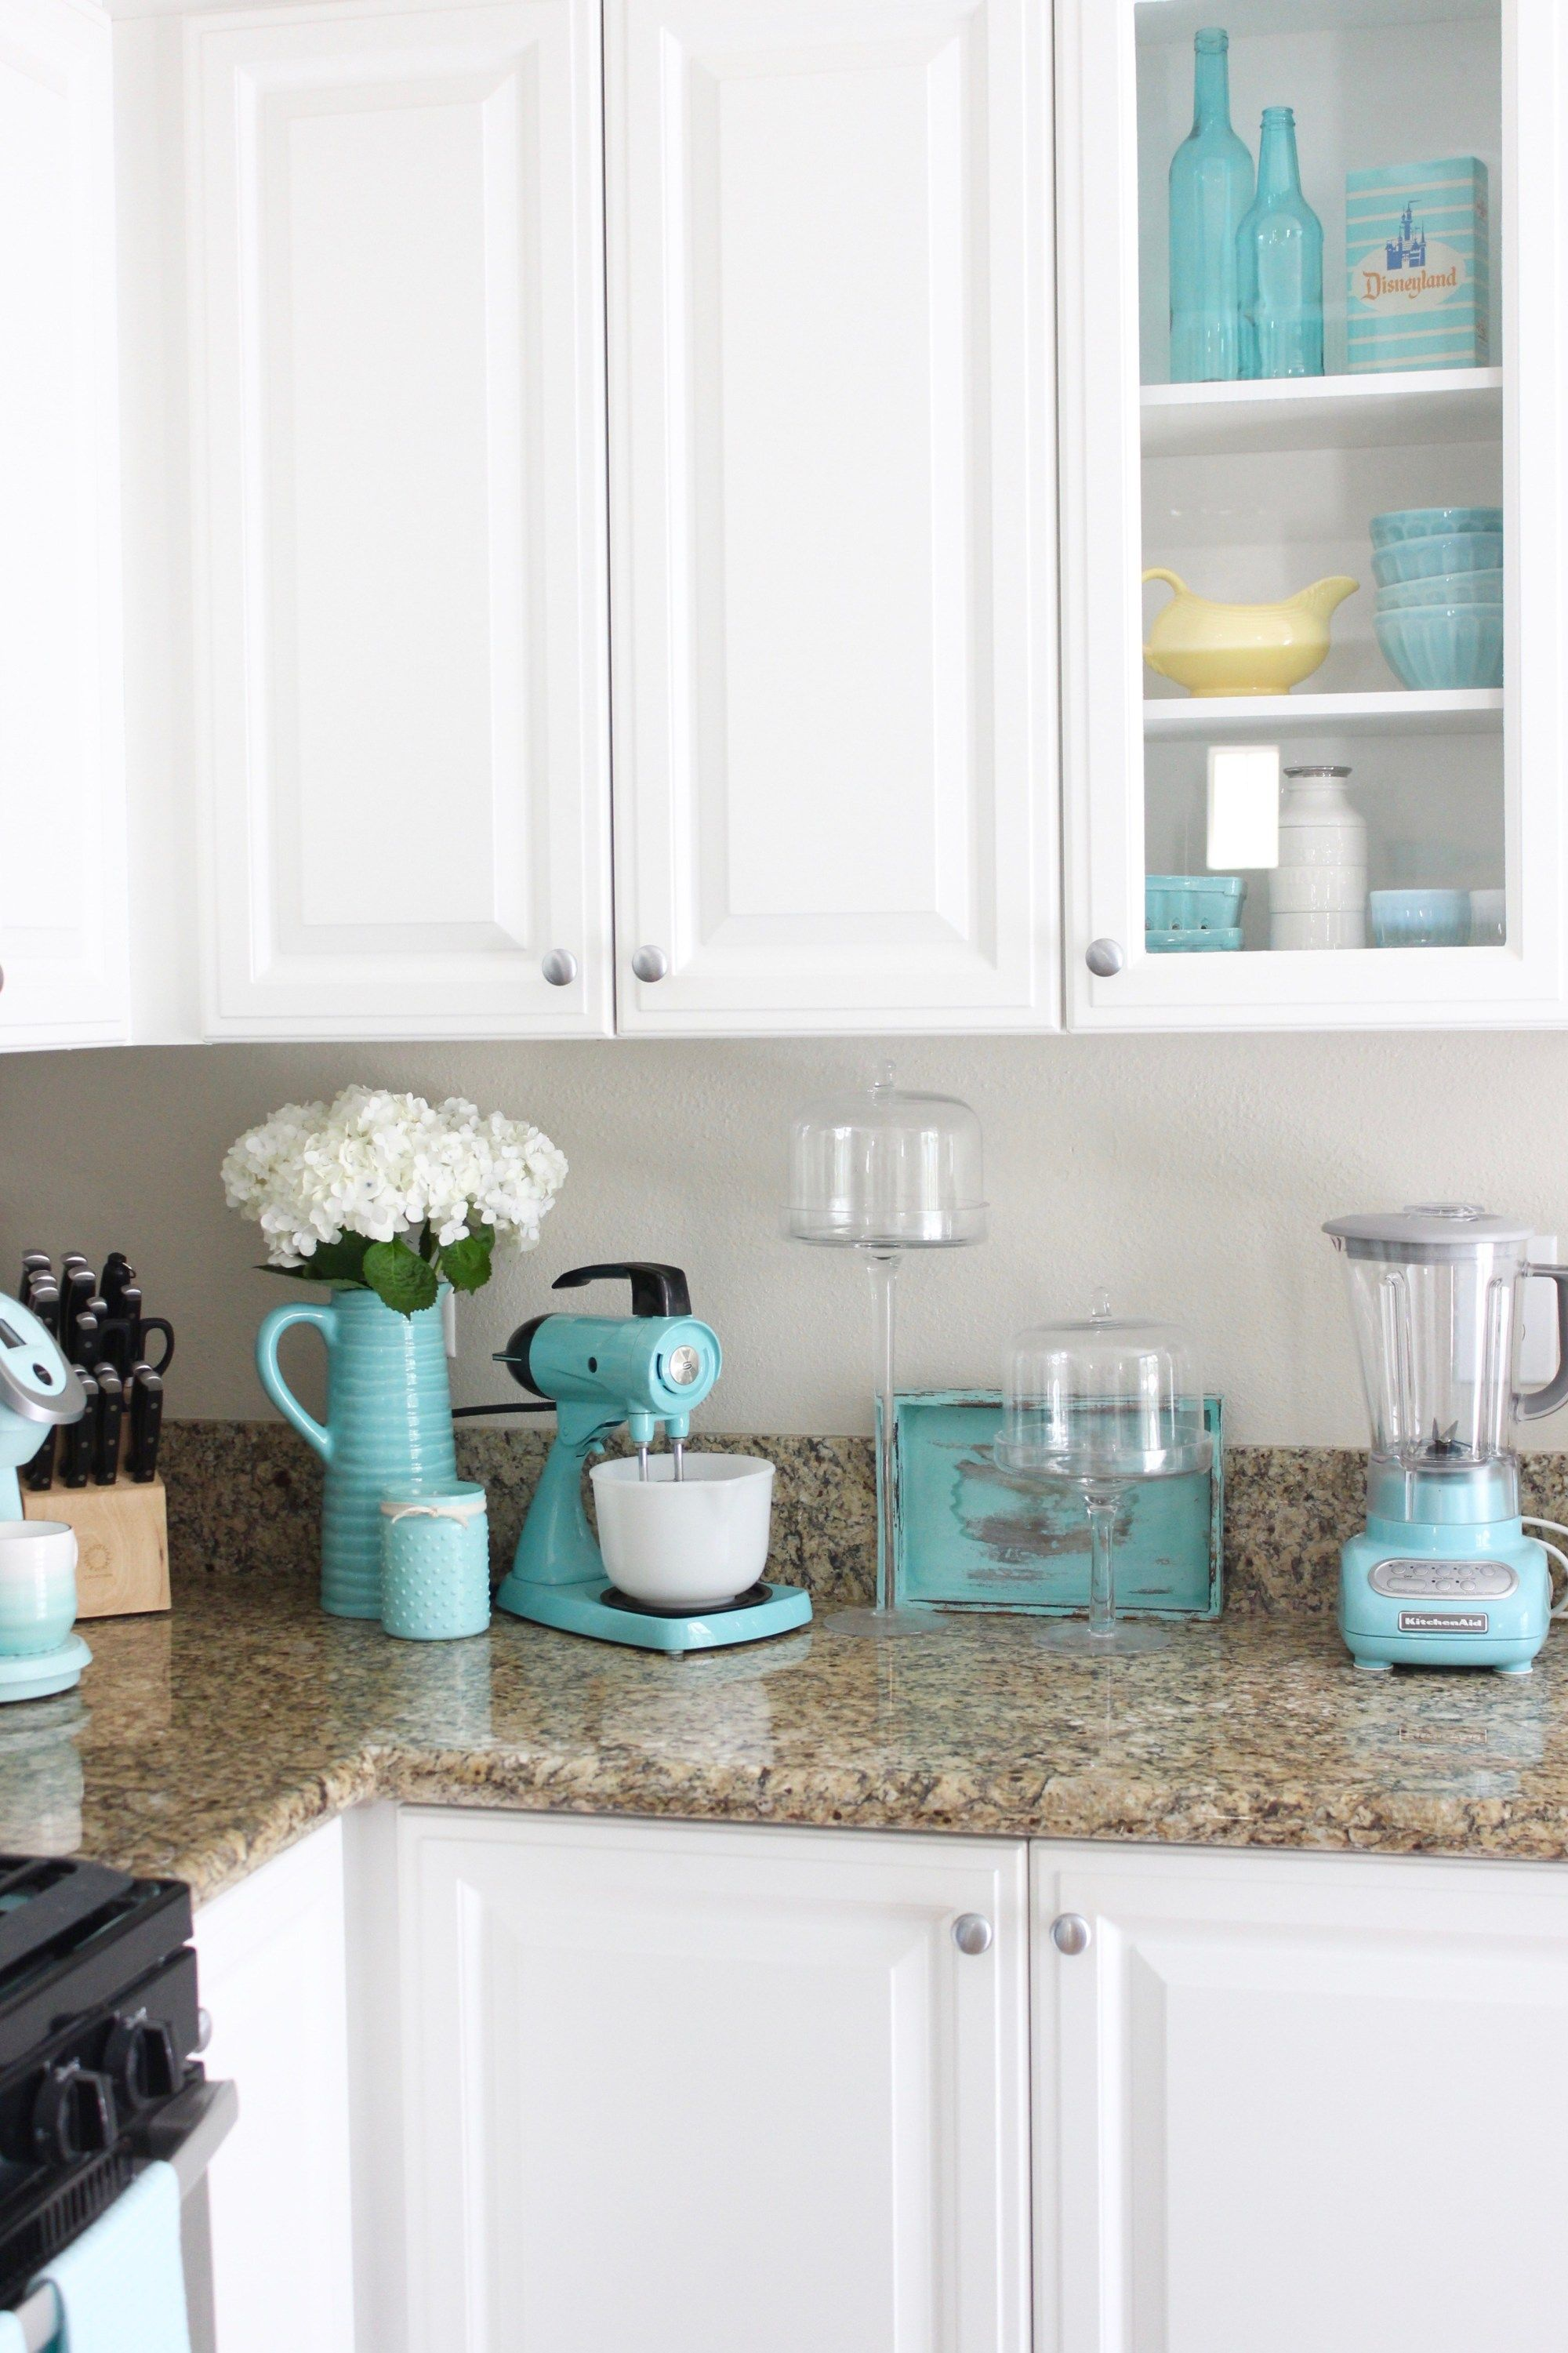 Breezy S Kitchen Finds Turquoise Kitchen Decor Tiffany Blue